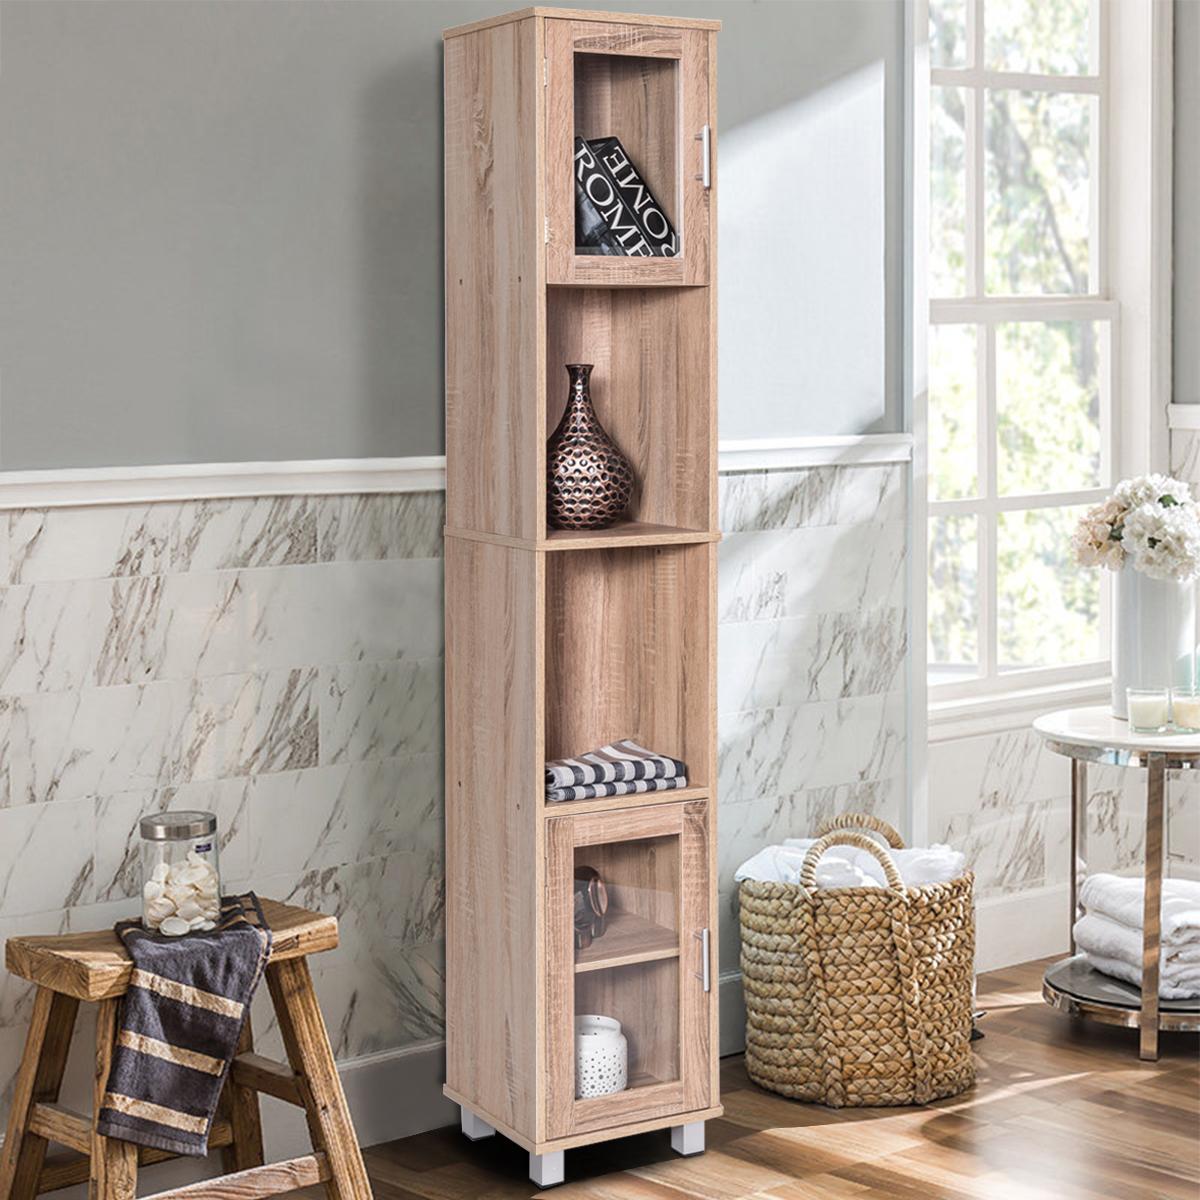 Costway 71u0027u0027 Tall Bathroom Linen Tower Cabinet Shelf Organizer Storage Wood